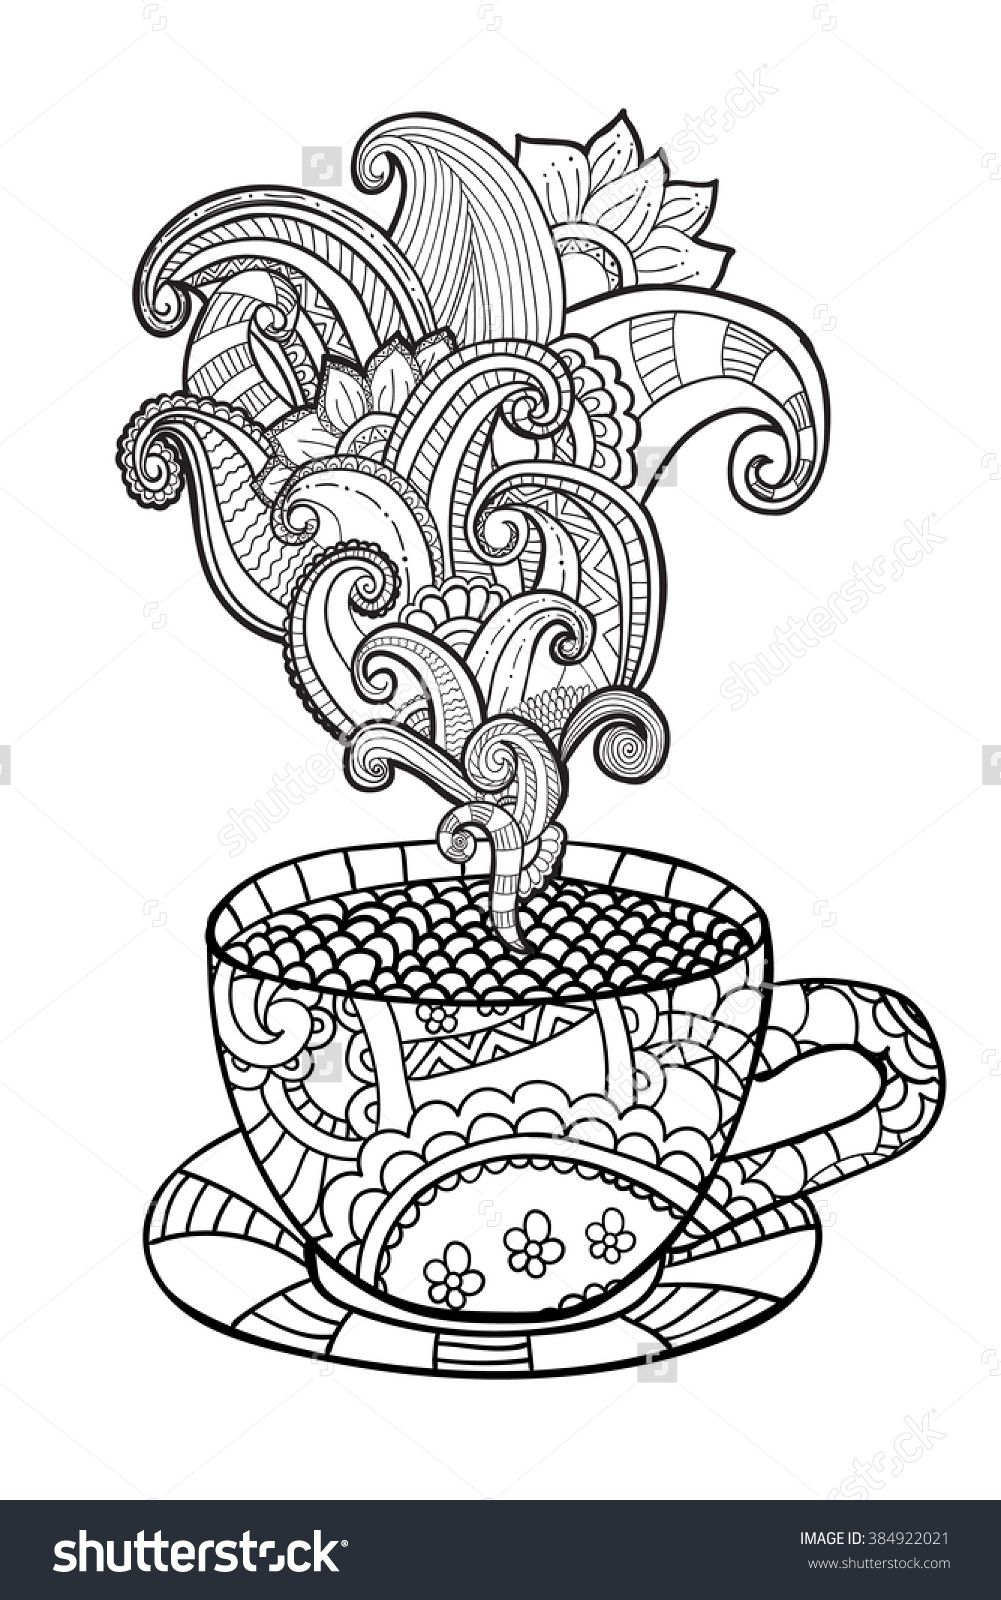 Coffee Or Tea Cup Zentangle Style Coloring Page 384922021 - Free Printable Tea Cup Coloring Pages